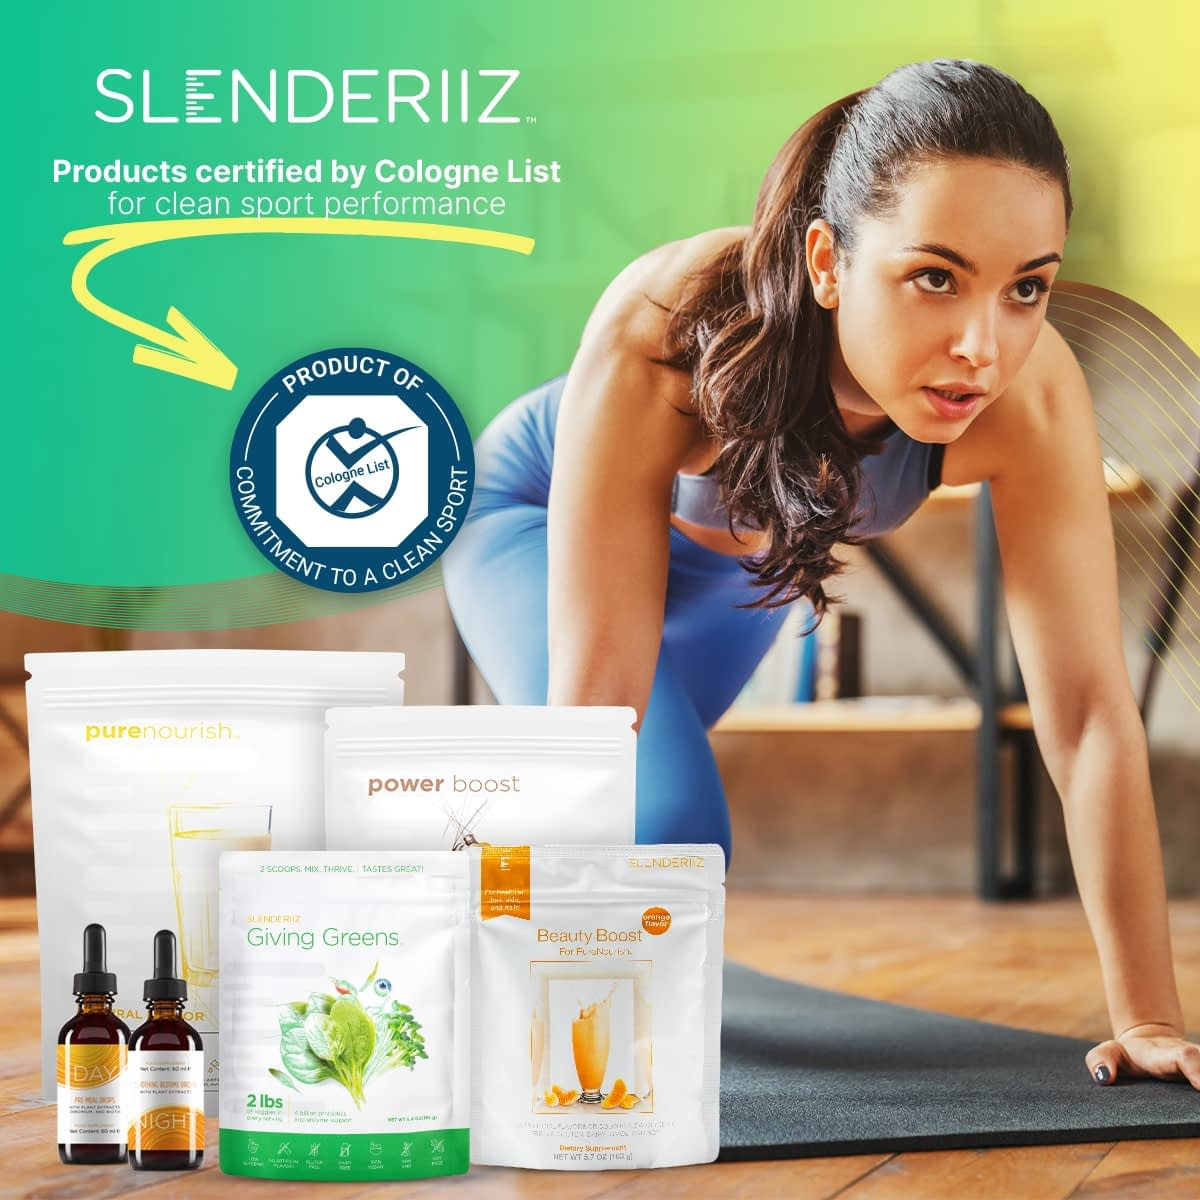 Slenderiiz Products Certified by Cologne List